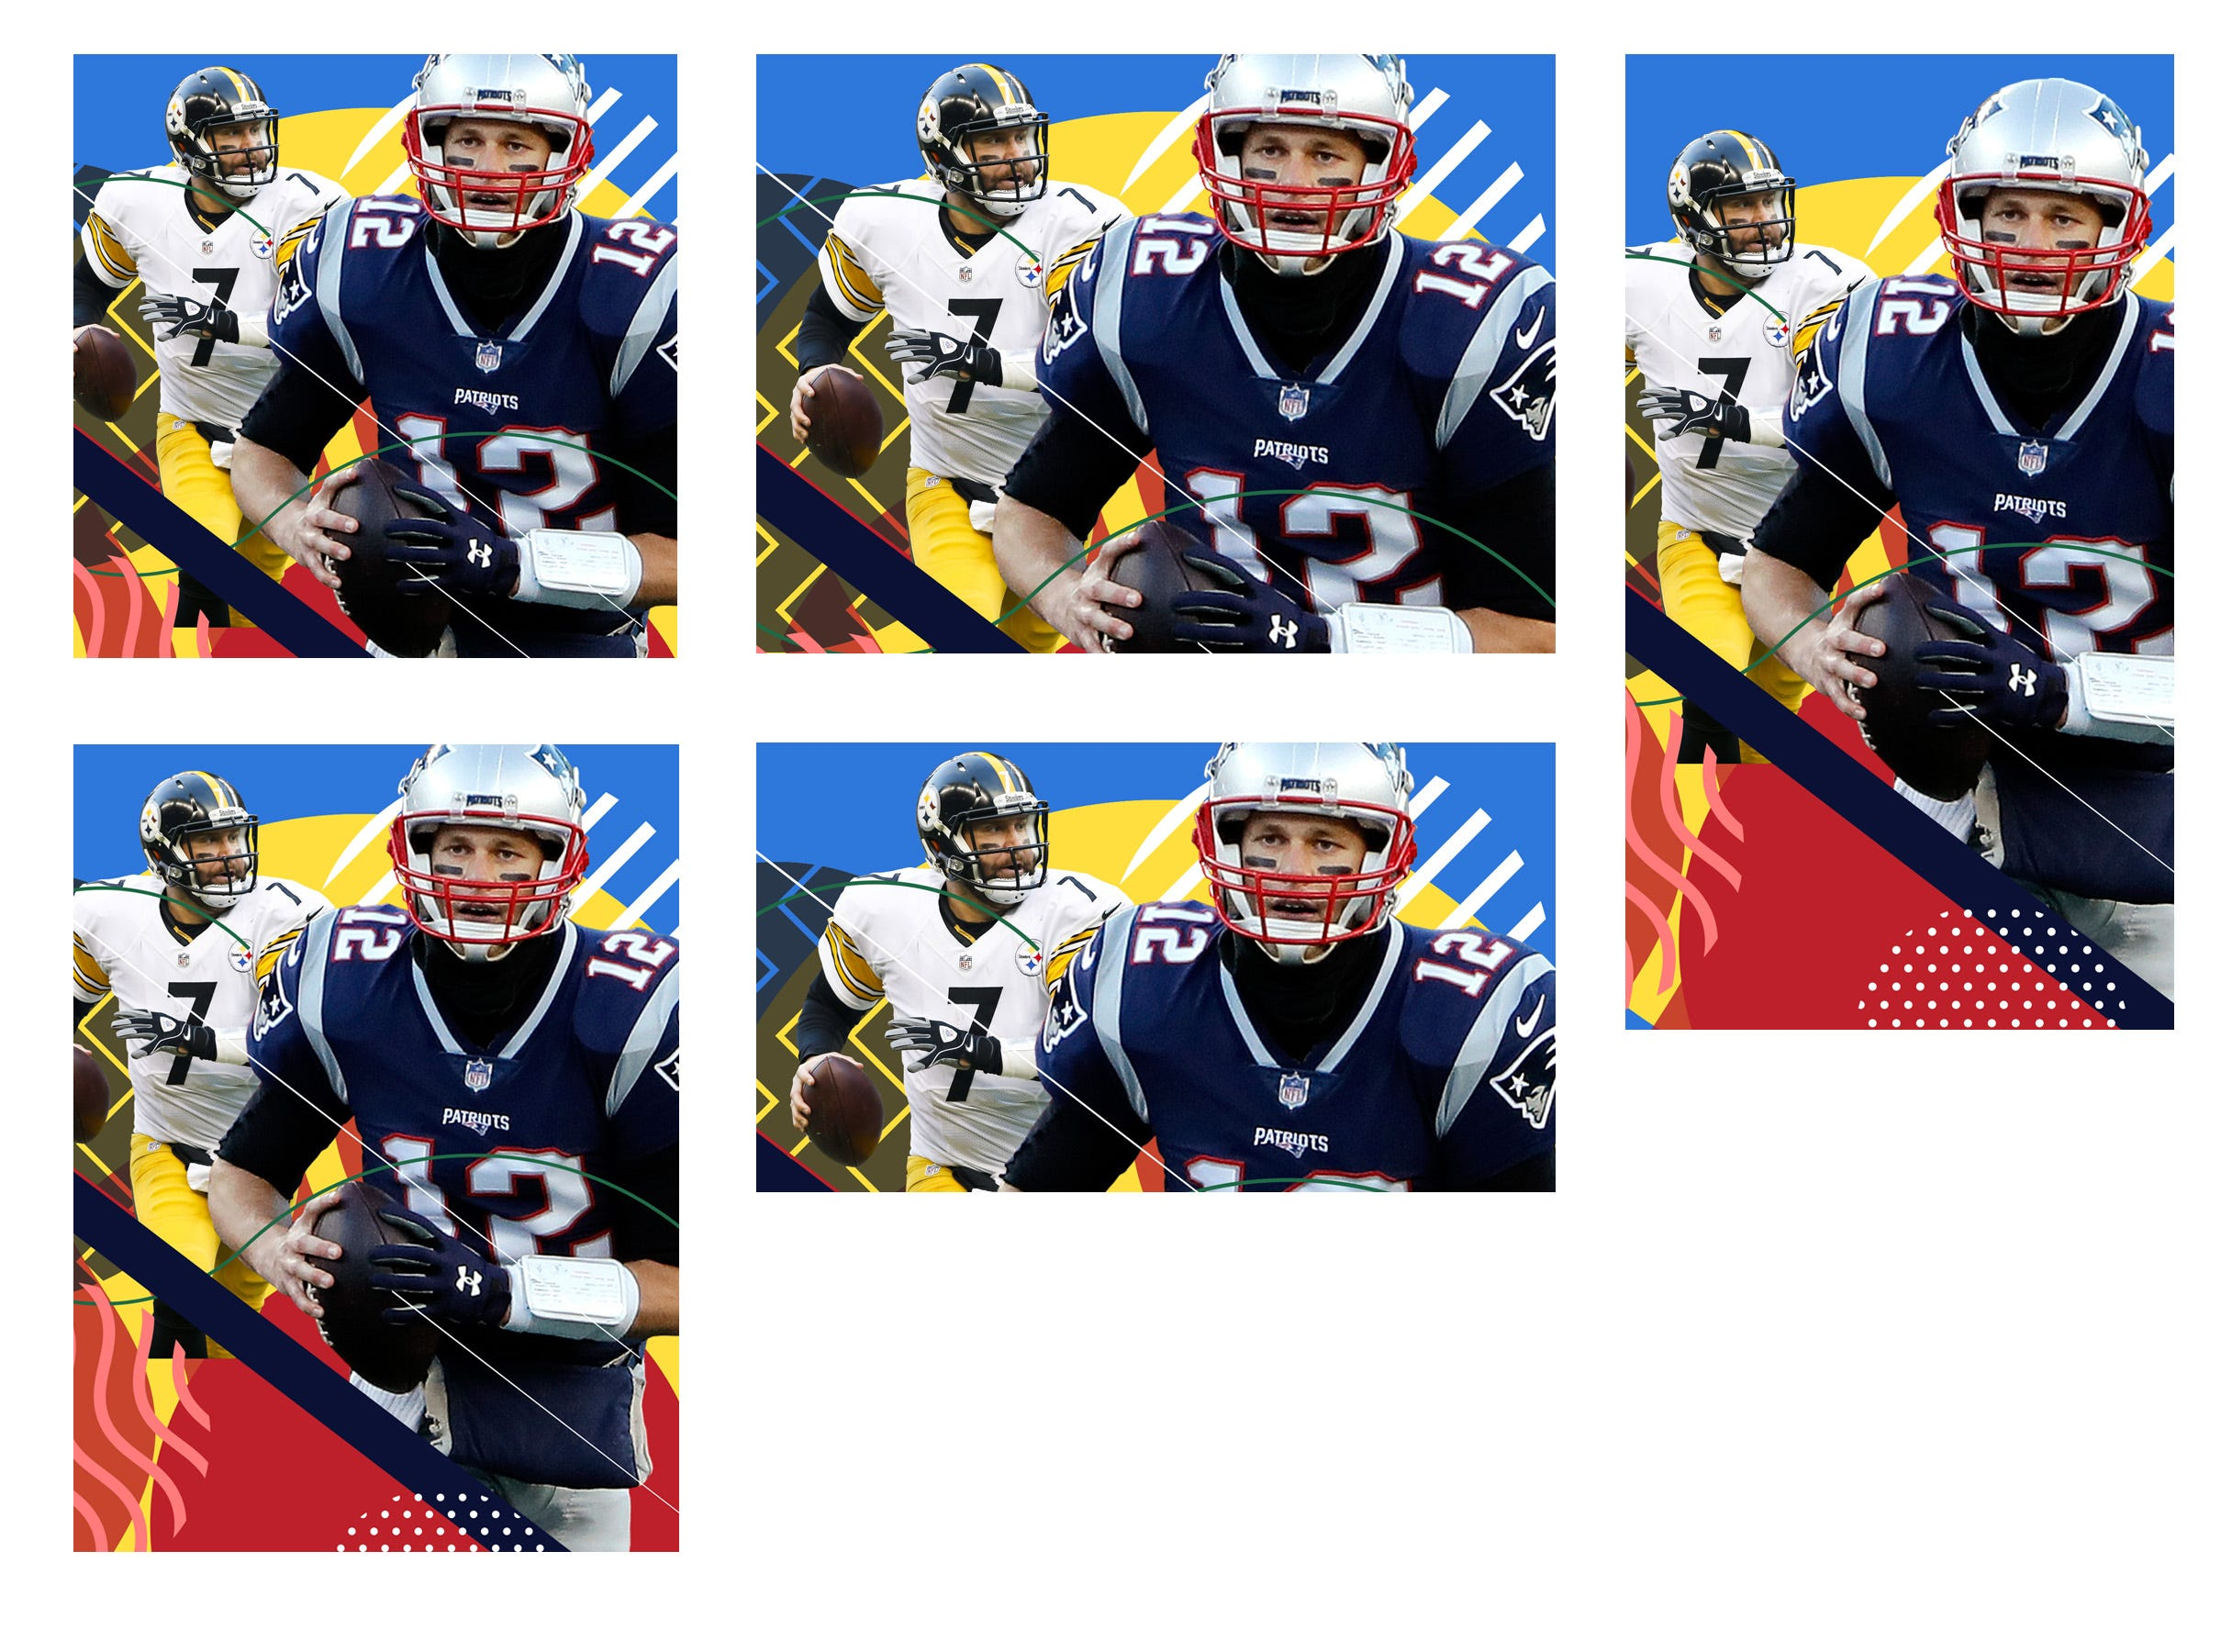 USA TODAY Sports' Week 1 NFL picks: Will Steelers upset Patriots in opener? thumbnail